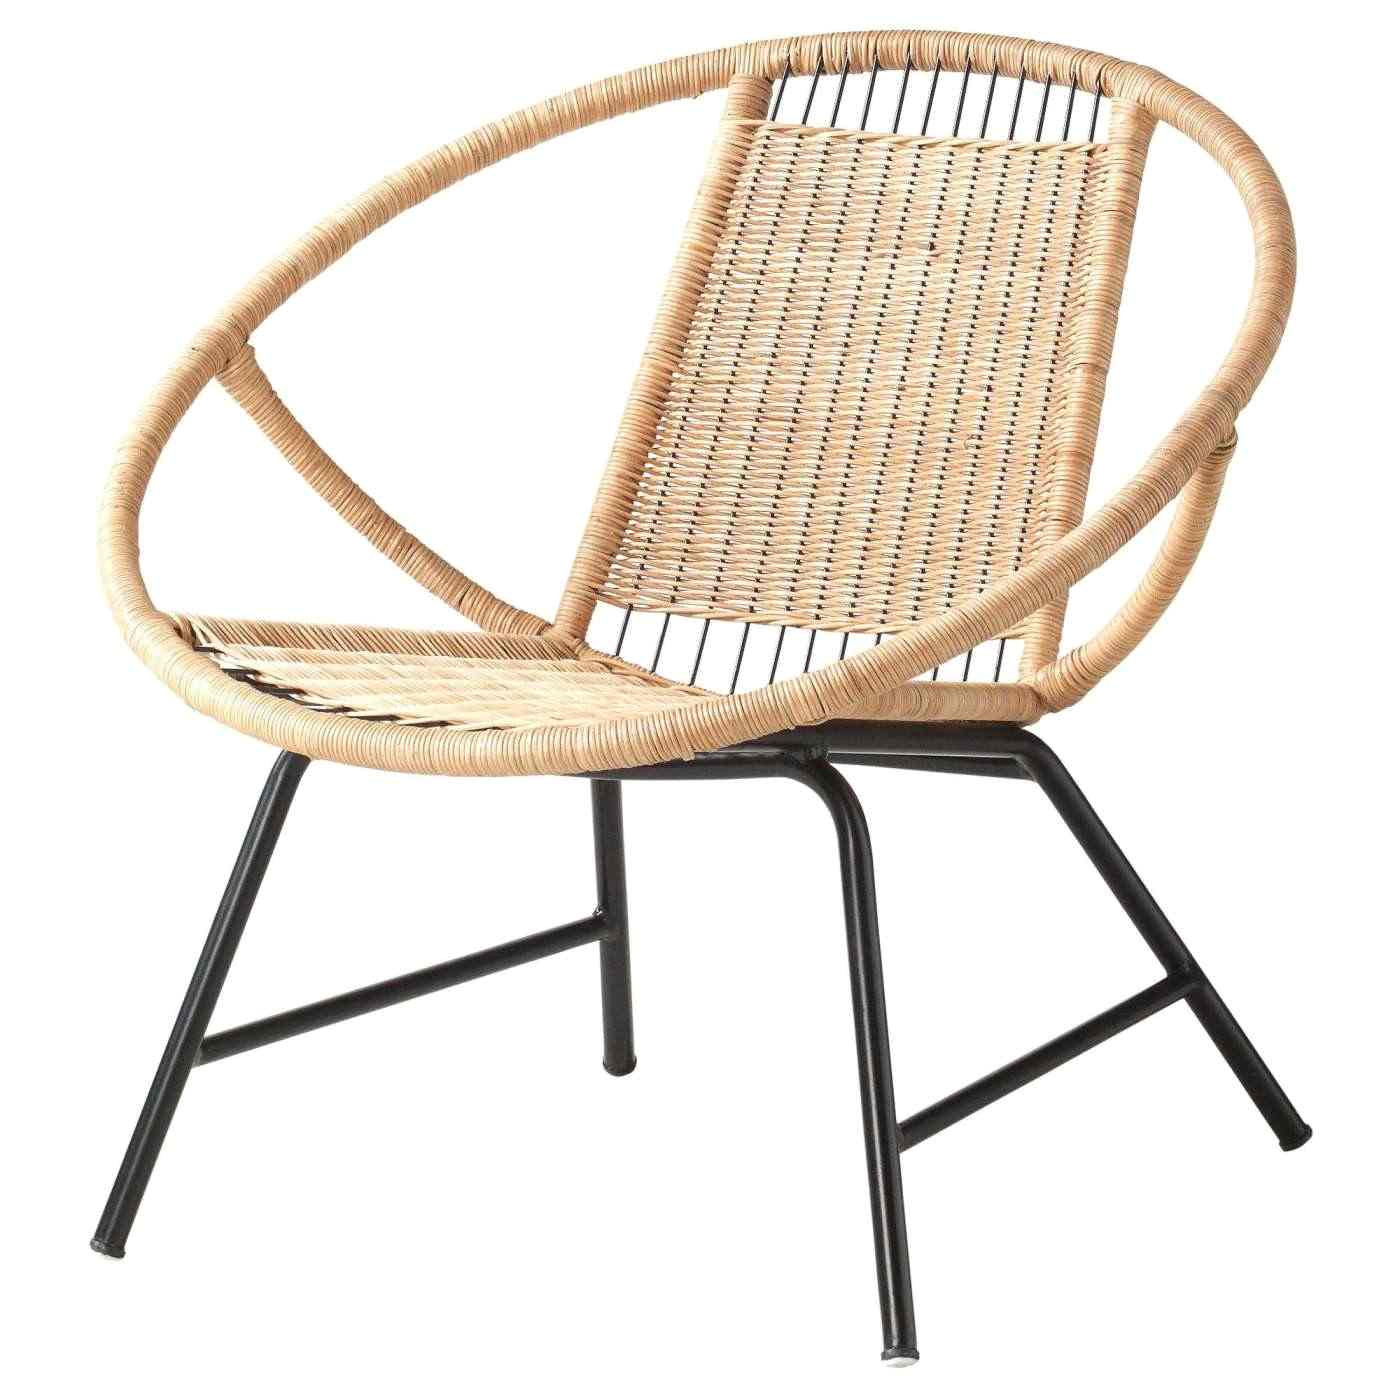 38 graphics hanging egg chair ikea luxury which gagnet armchair rattan black